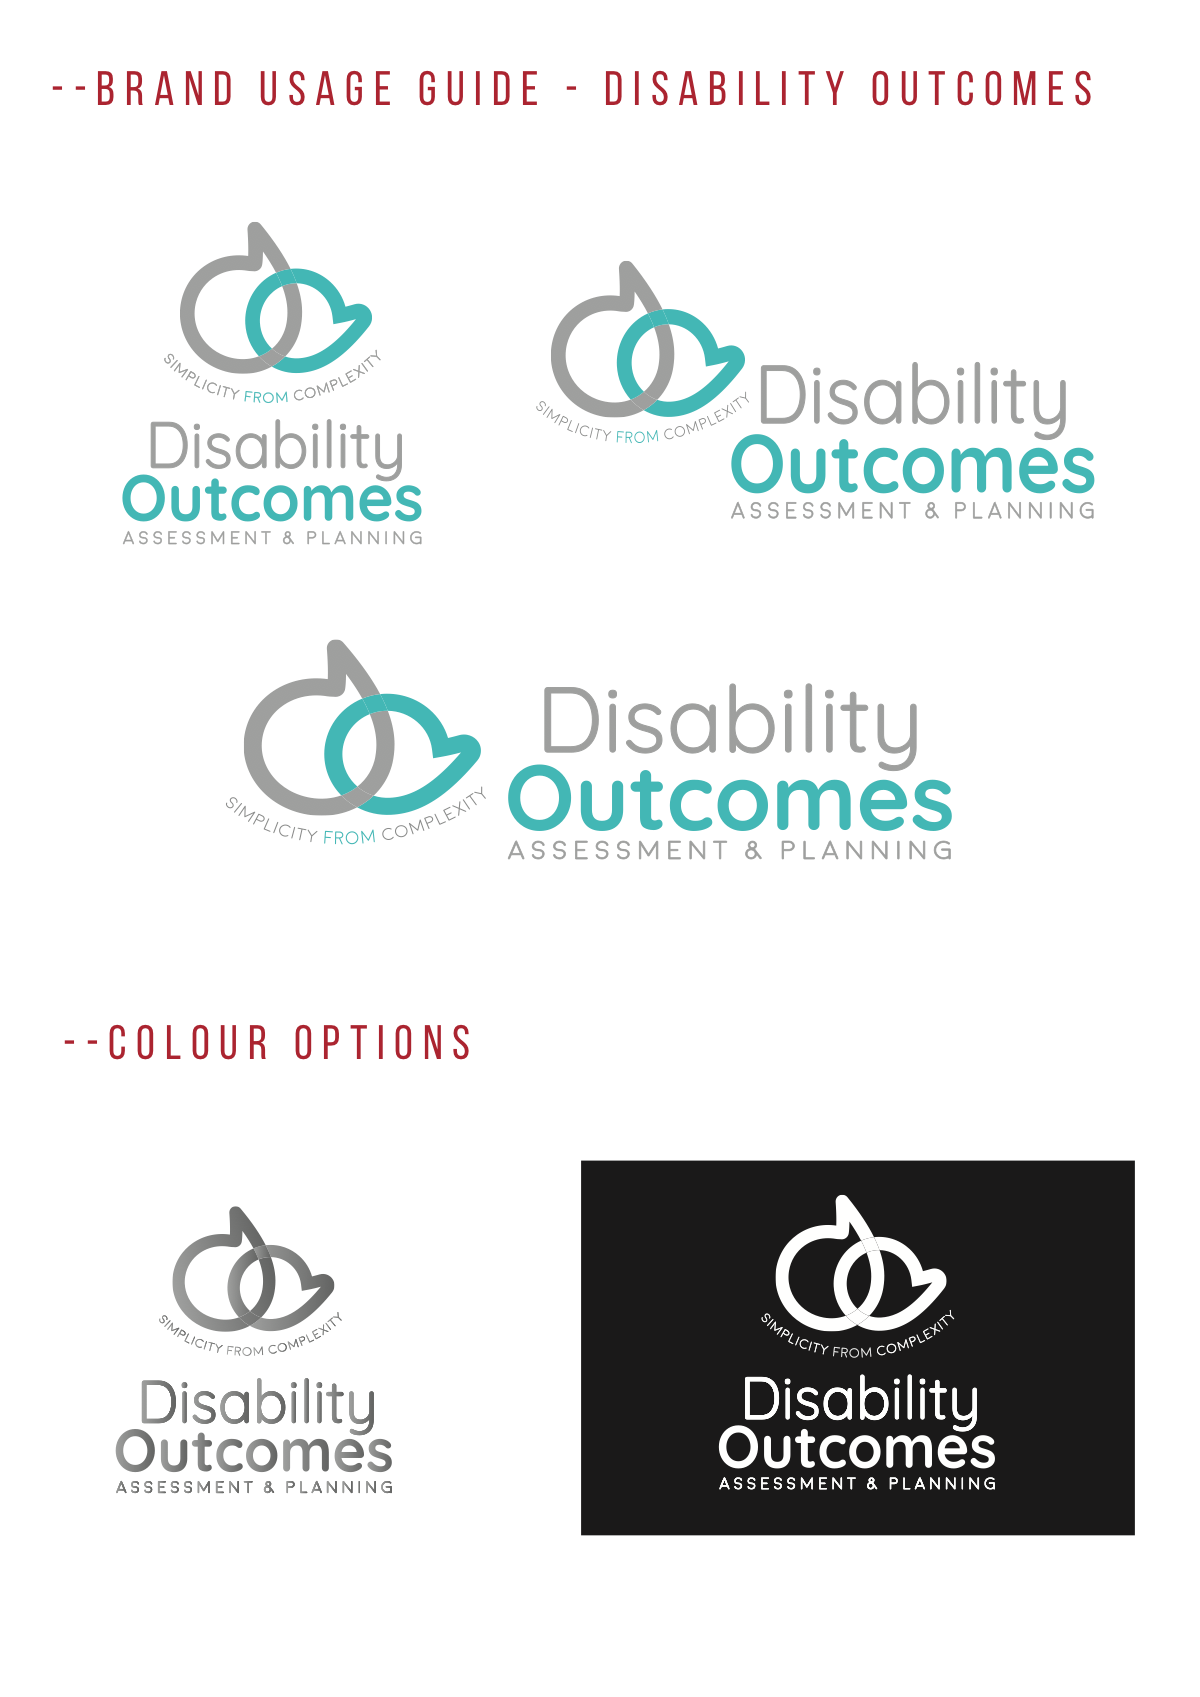 Update to Disability Outcomes